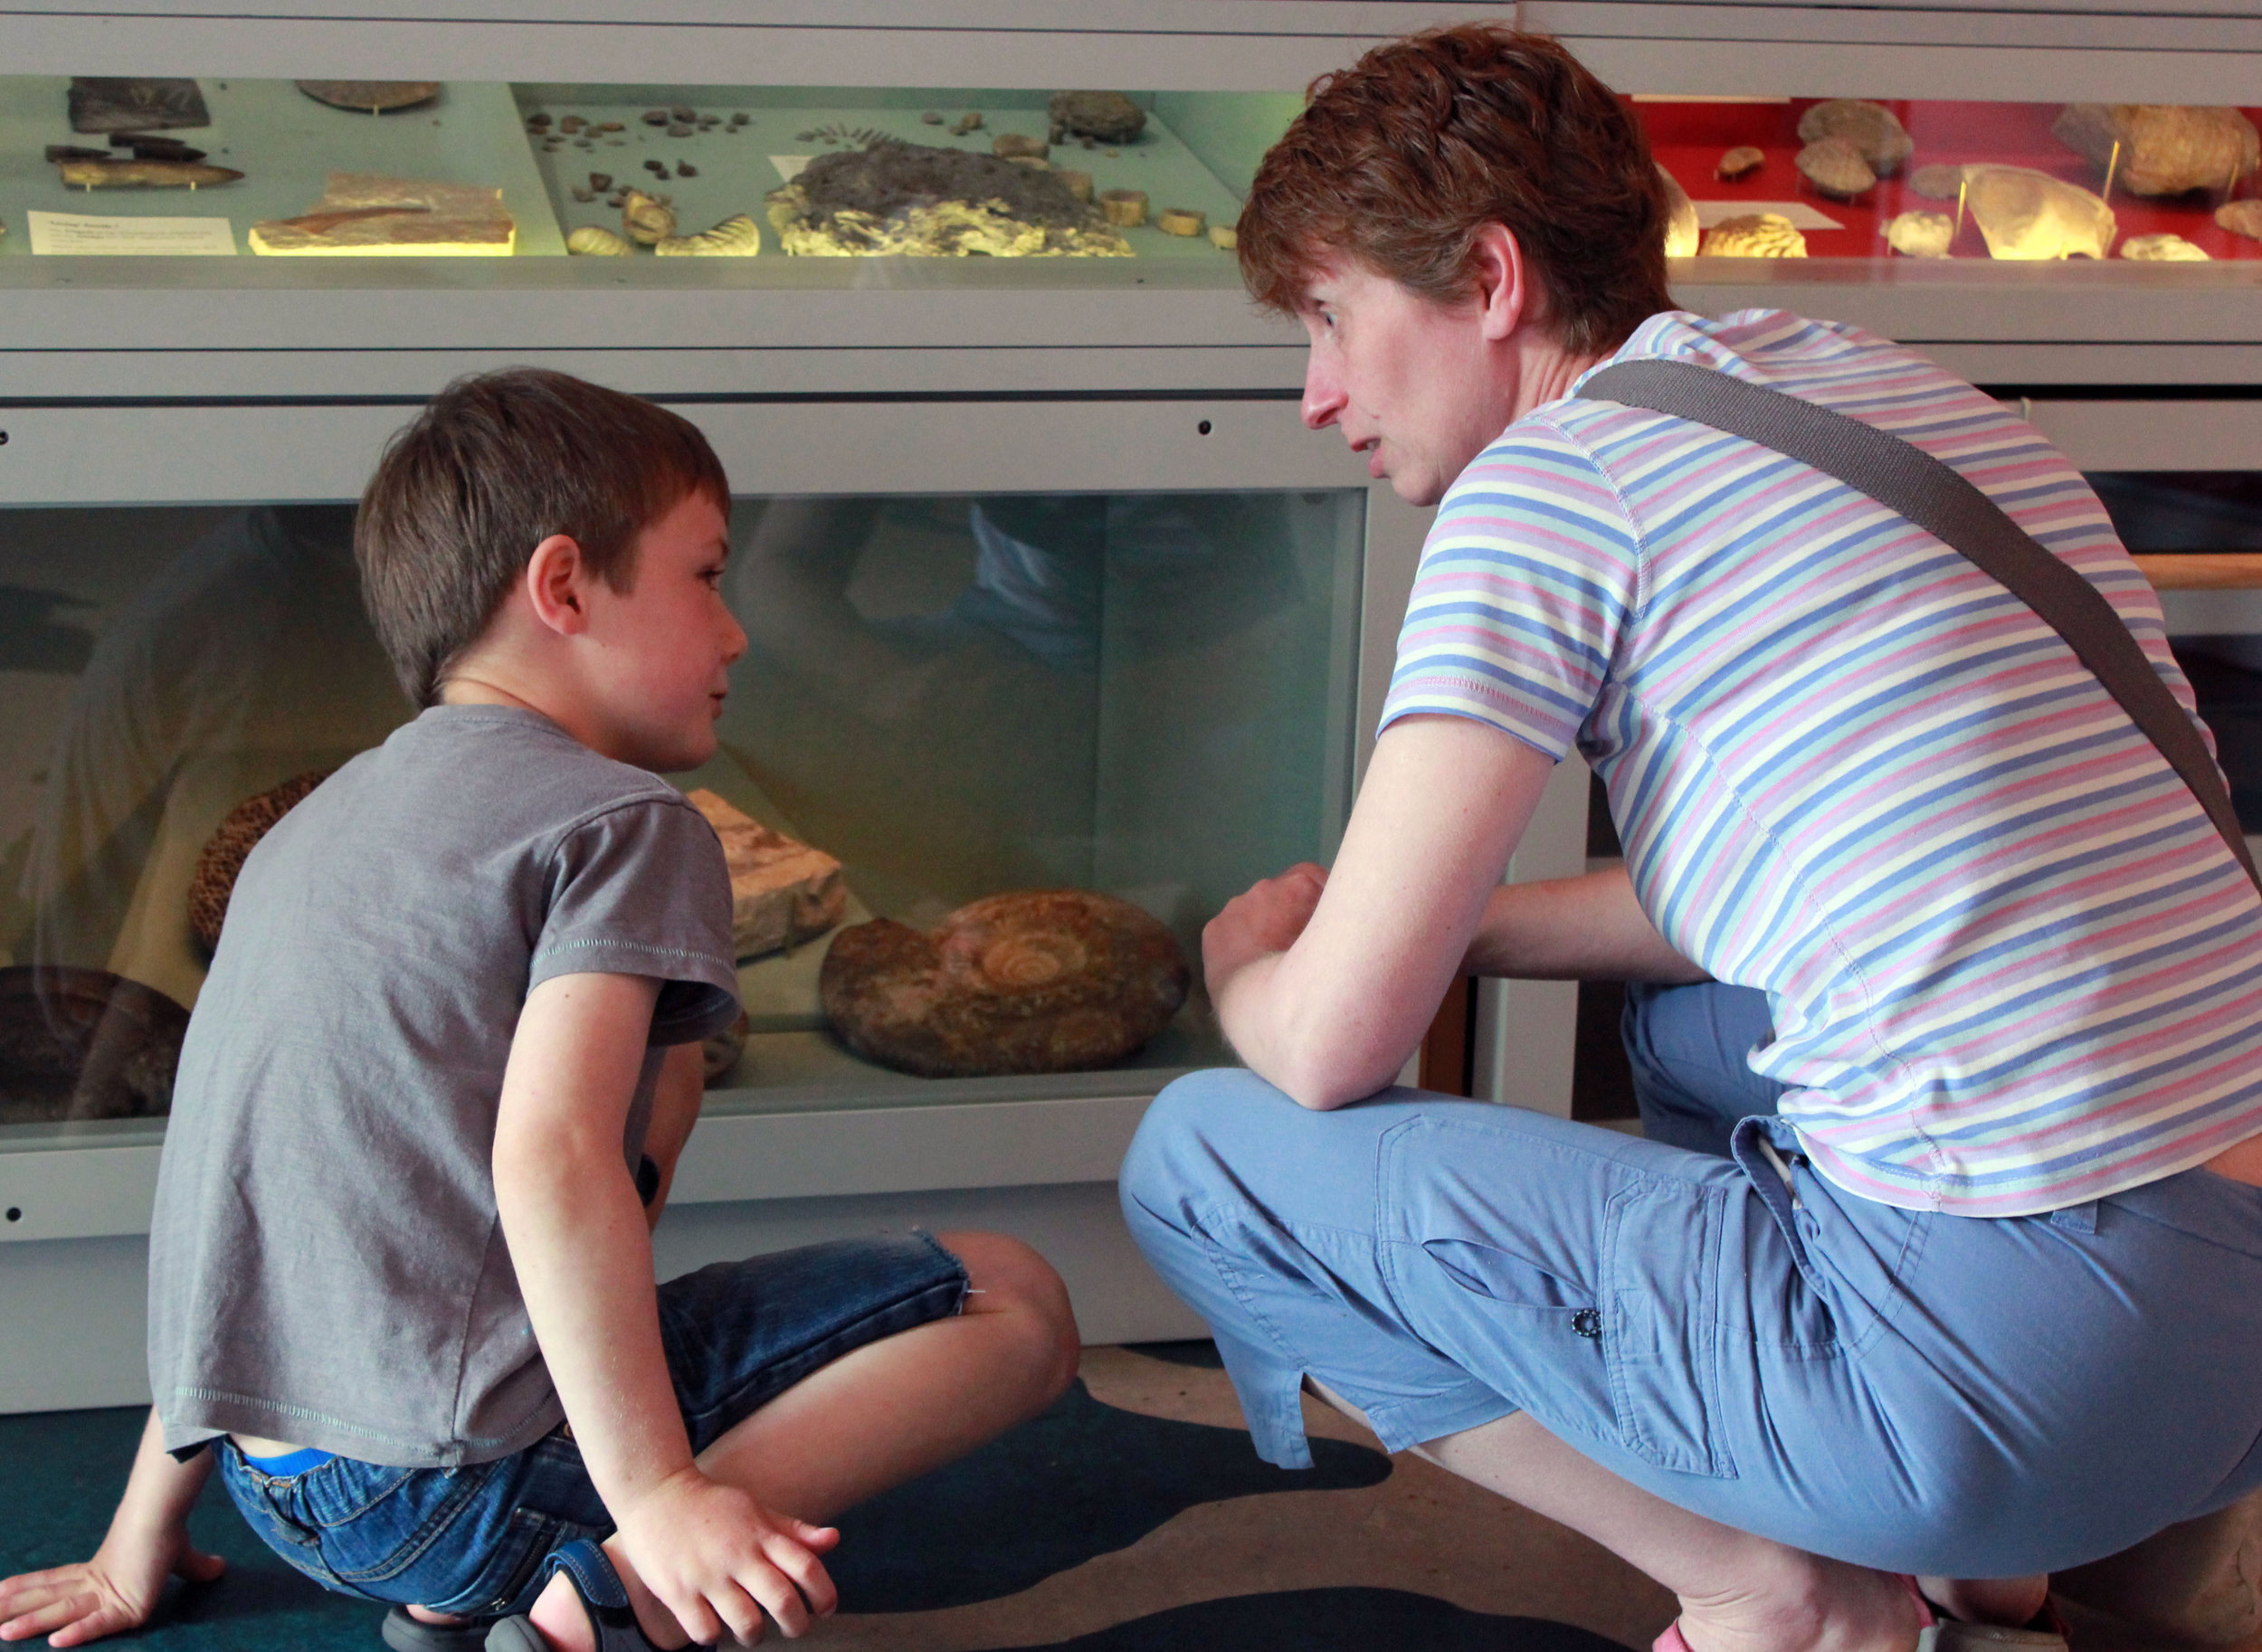 a CHILD AND MOTHER DISCUSSING GEOLOGY OBJECTS THEY ARE LOOKING AT IN A MUSEUM DISPLAY CASE